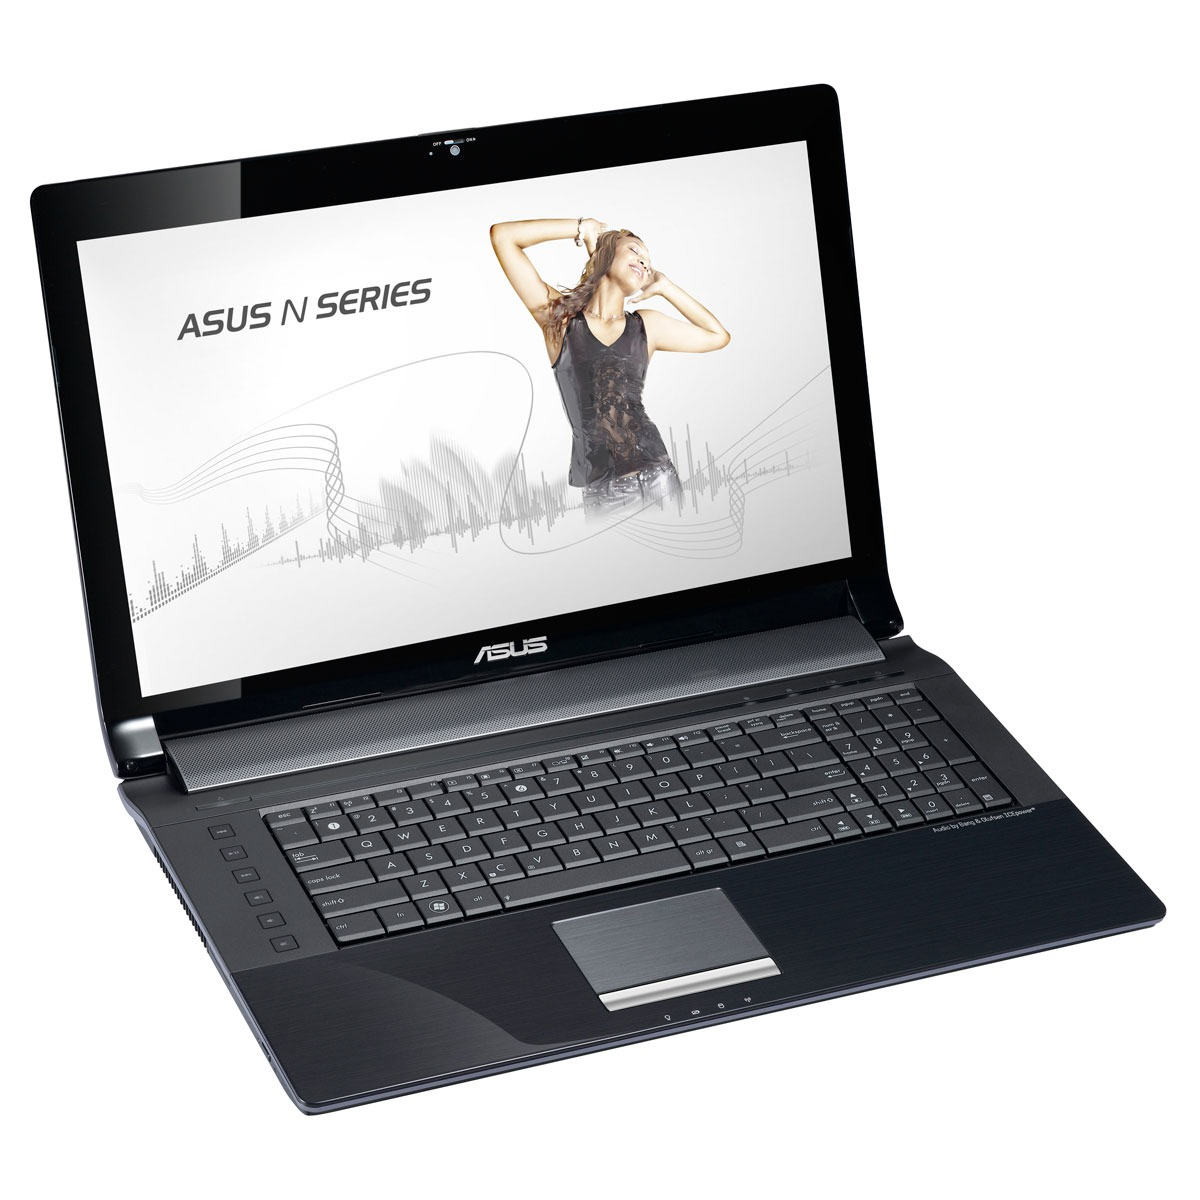 "PC portable ASUS N73Jq-TZ069V ASUS N73Jq-TZ069V - Intel Core i7-720QM 6 Go 1280 (2x 640) Go 17.3"" LED NVIDIA GeForce GT 425M Combo Lecteur Blu-ray/Graveur DVD Wi-Fi N/Bluetooth Webcam Windows 7 Premium 64 bits (garantie constructeur 2 ans)"